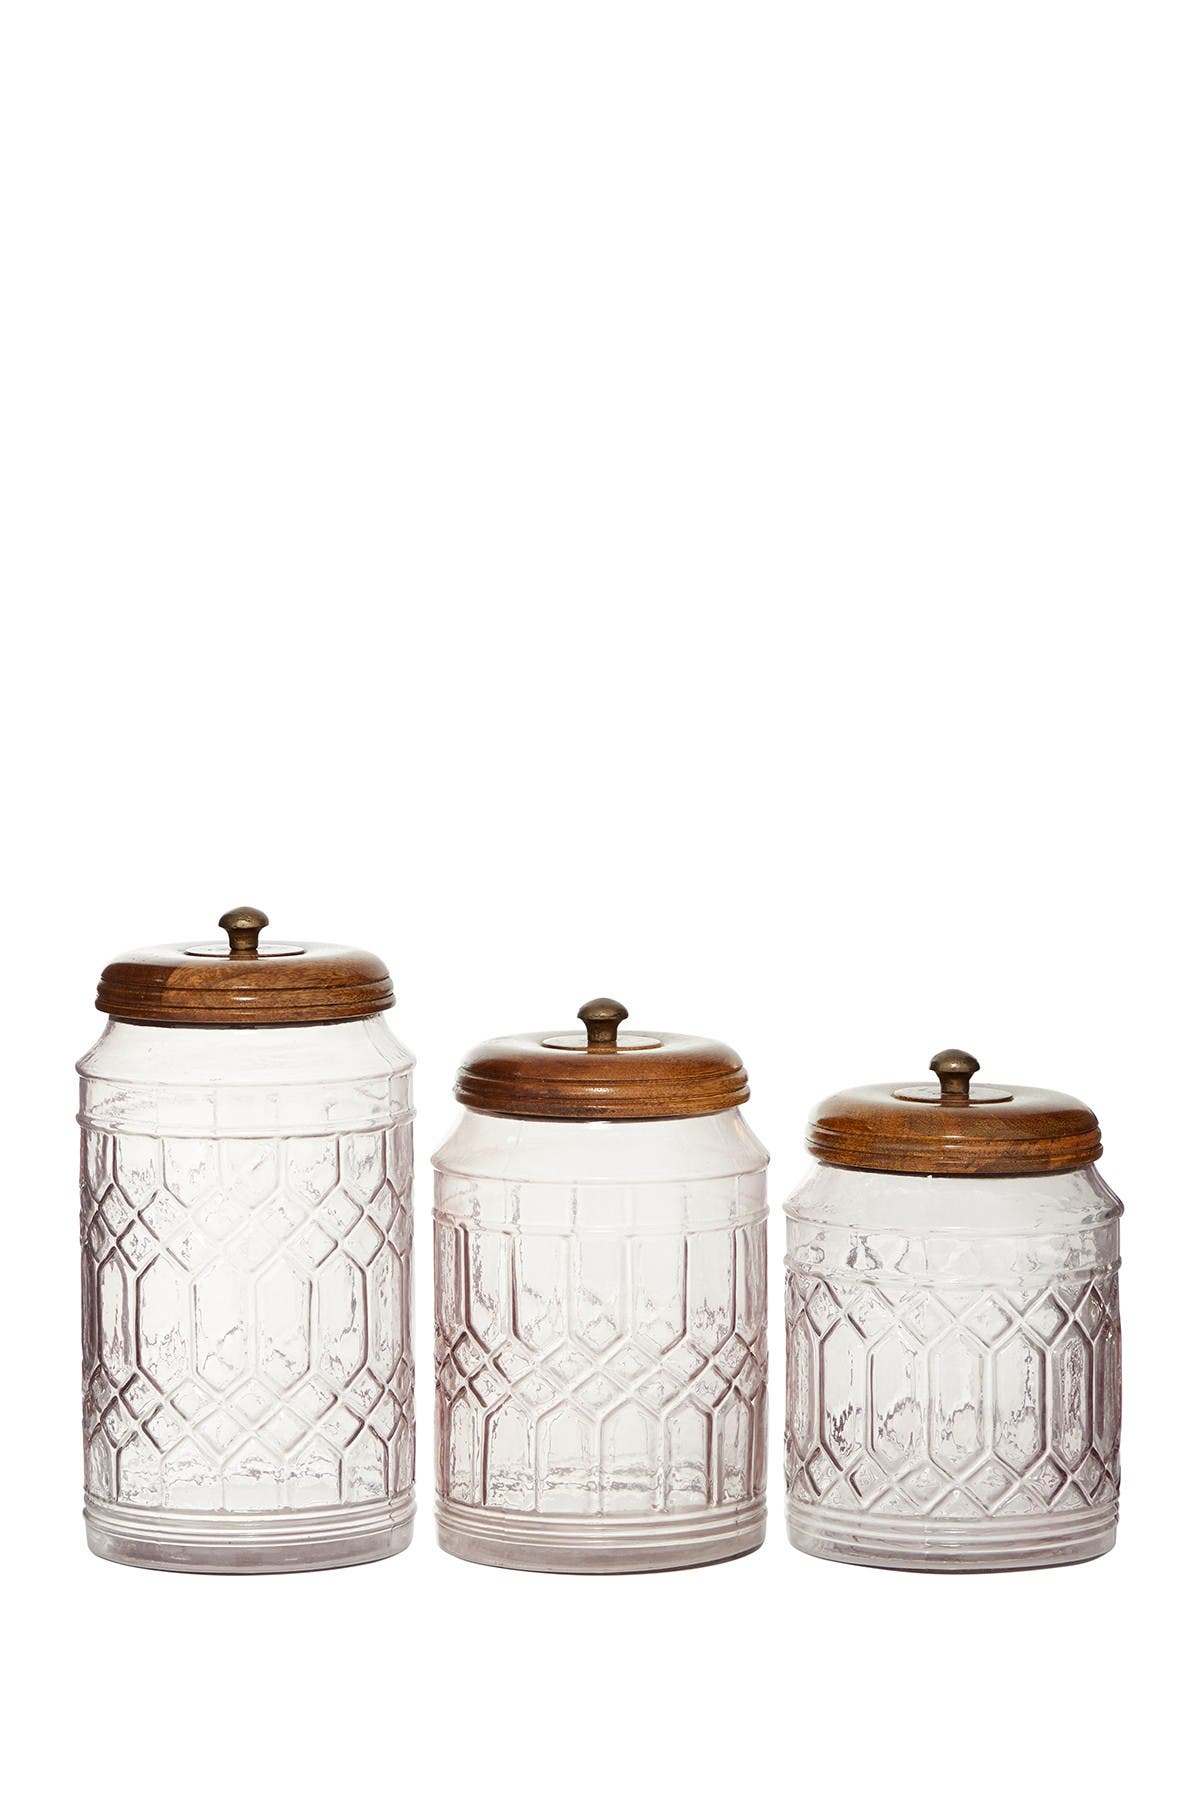 Image of Willow Row Large Round Gray Smoked Glass Jars & Lids - Set of 3